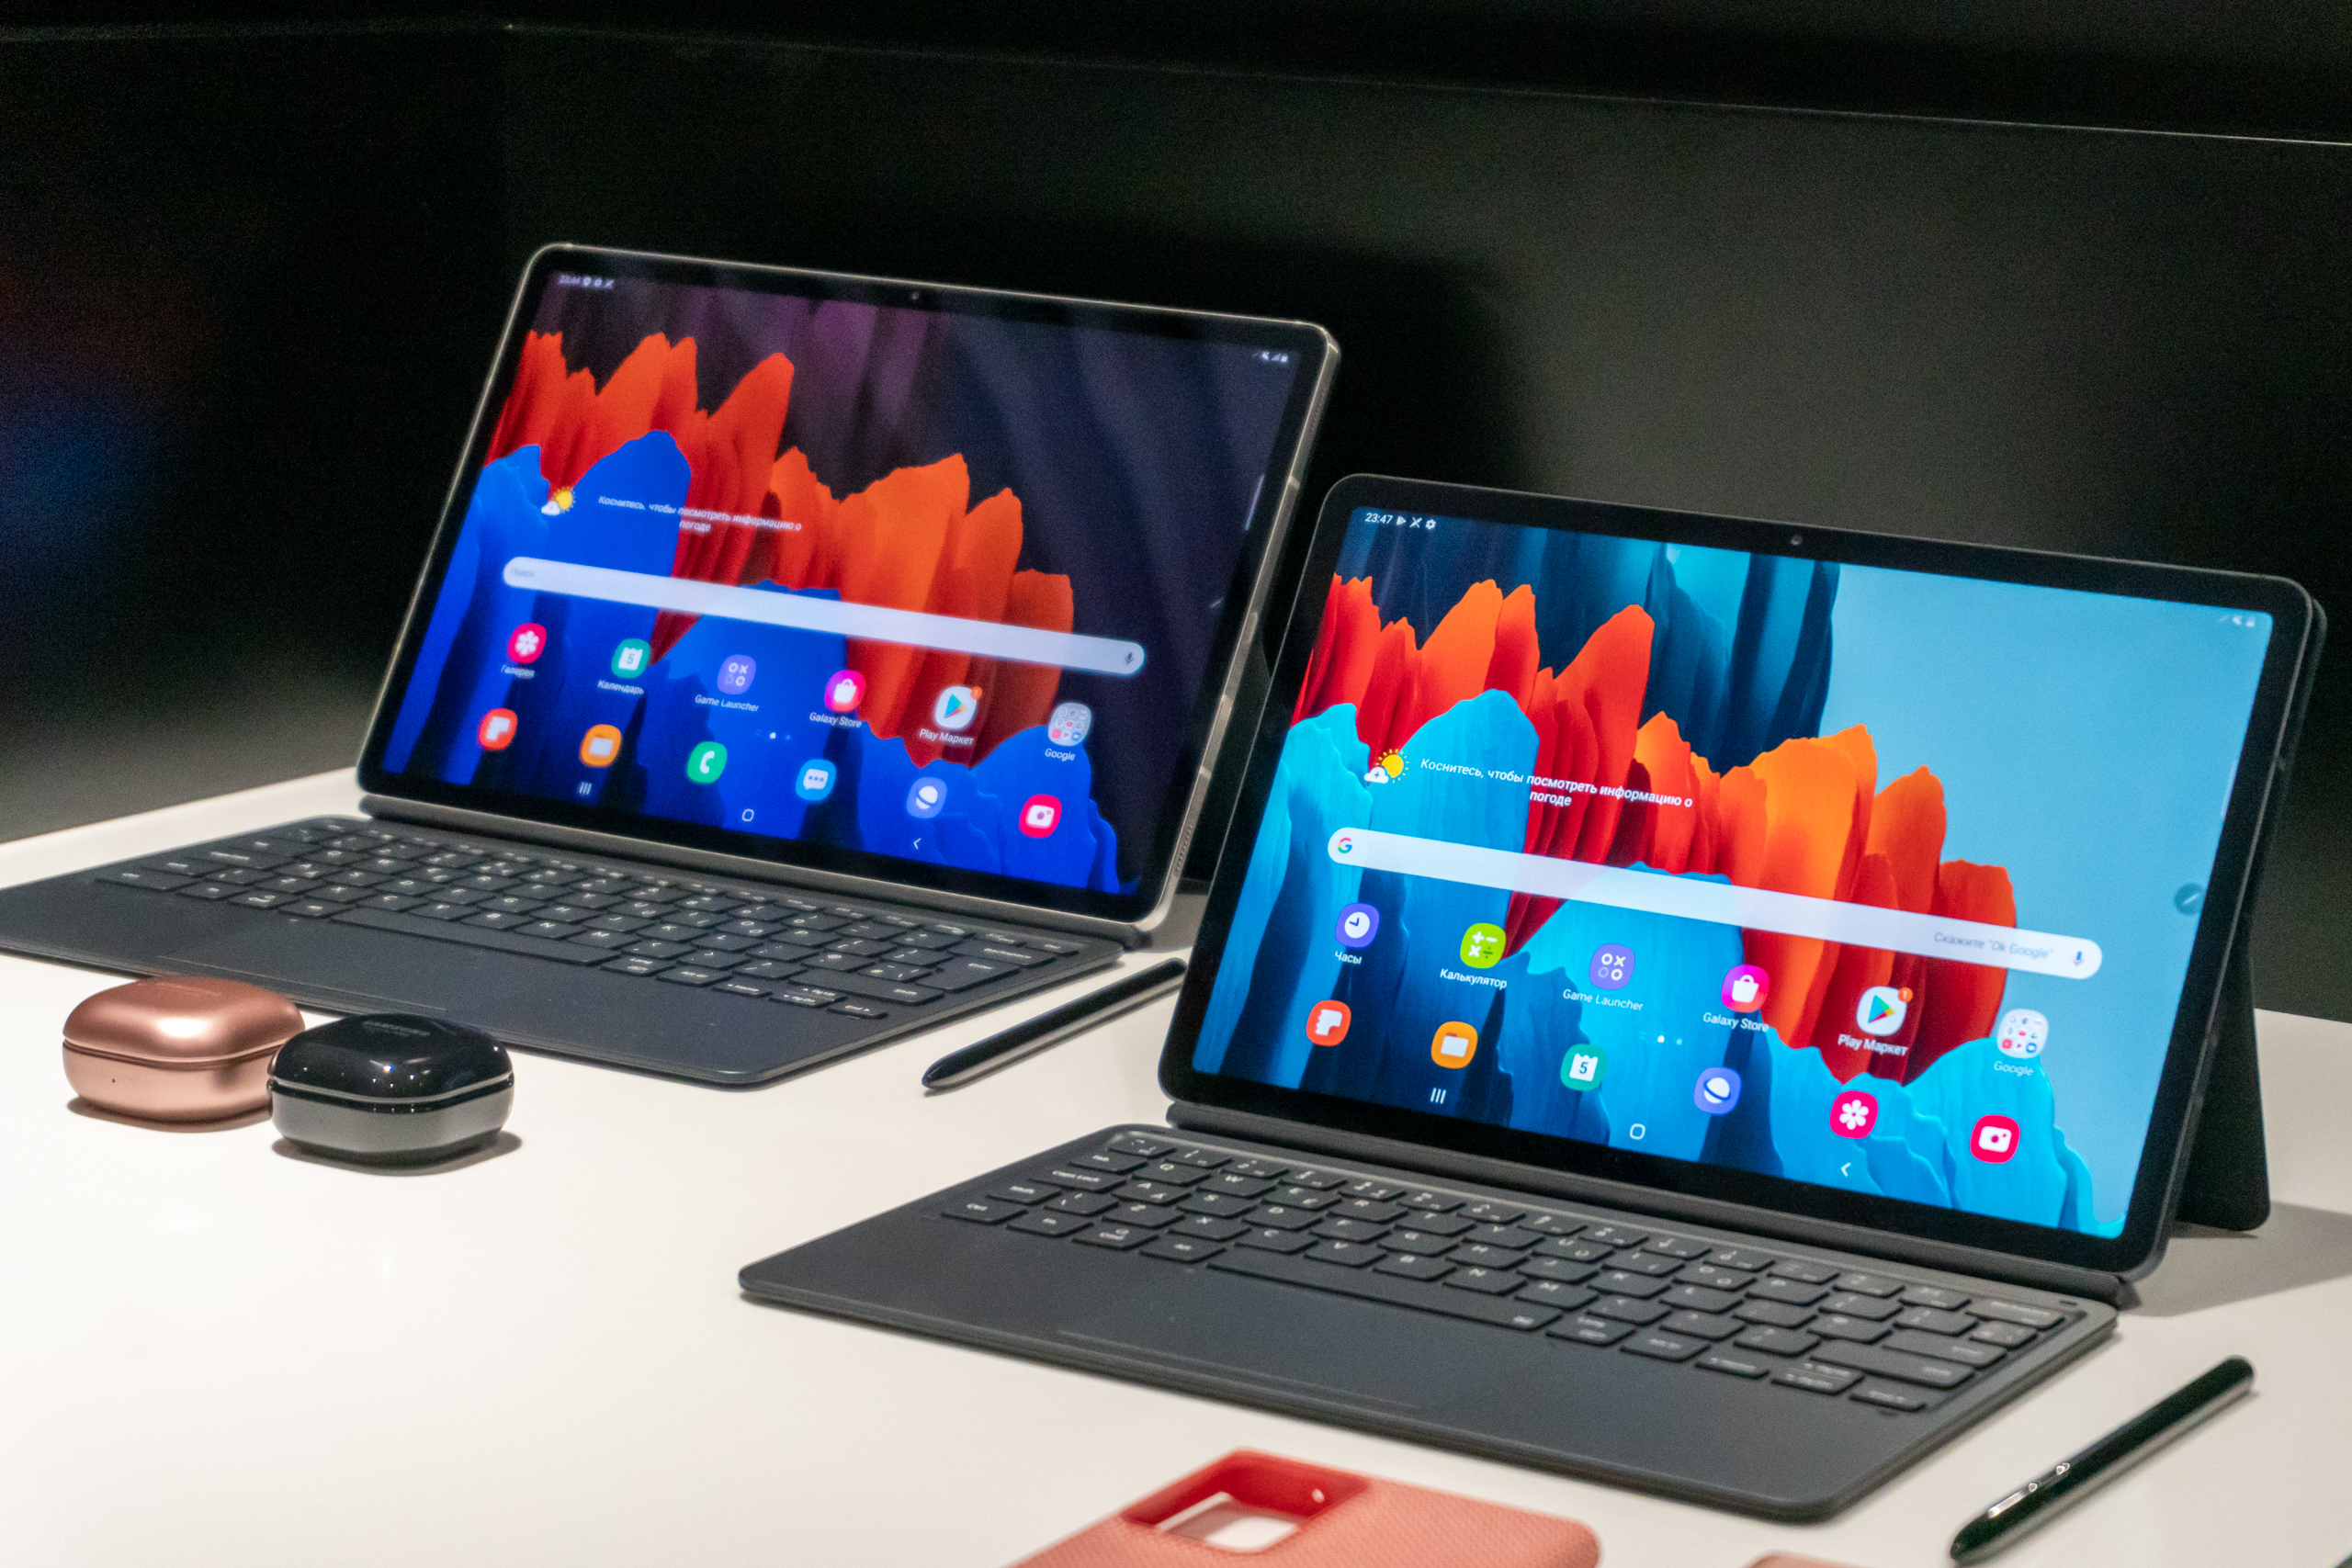 tab s7 and tab s7 plus_large_image